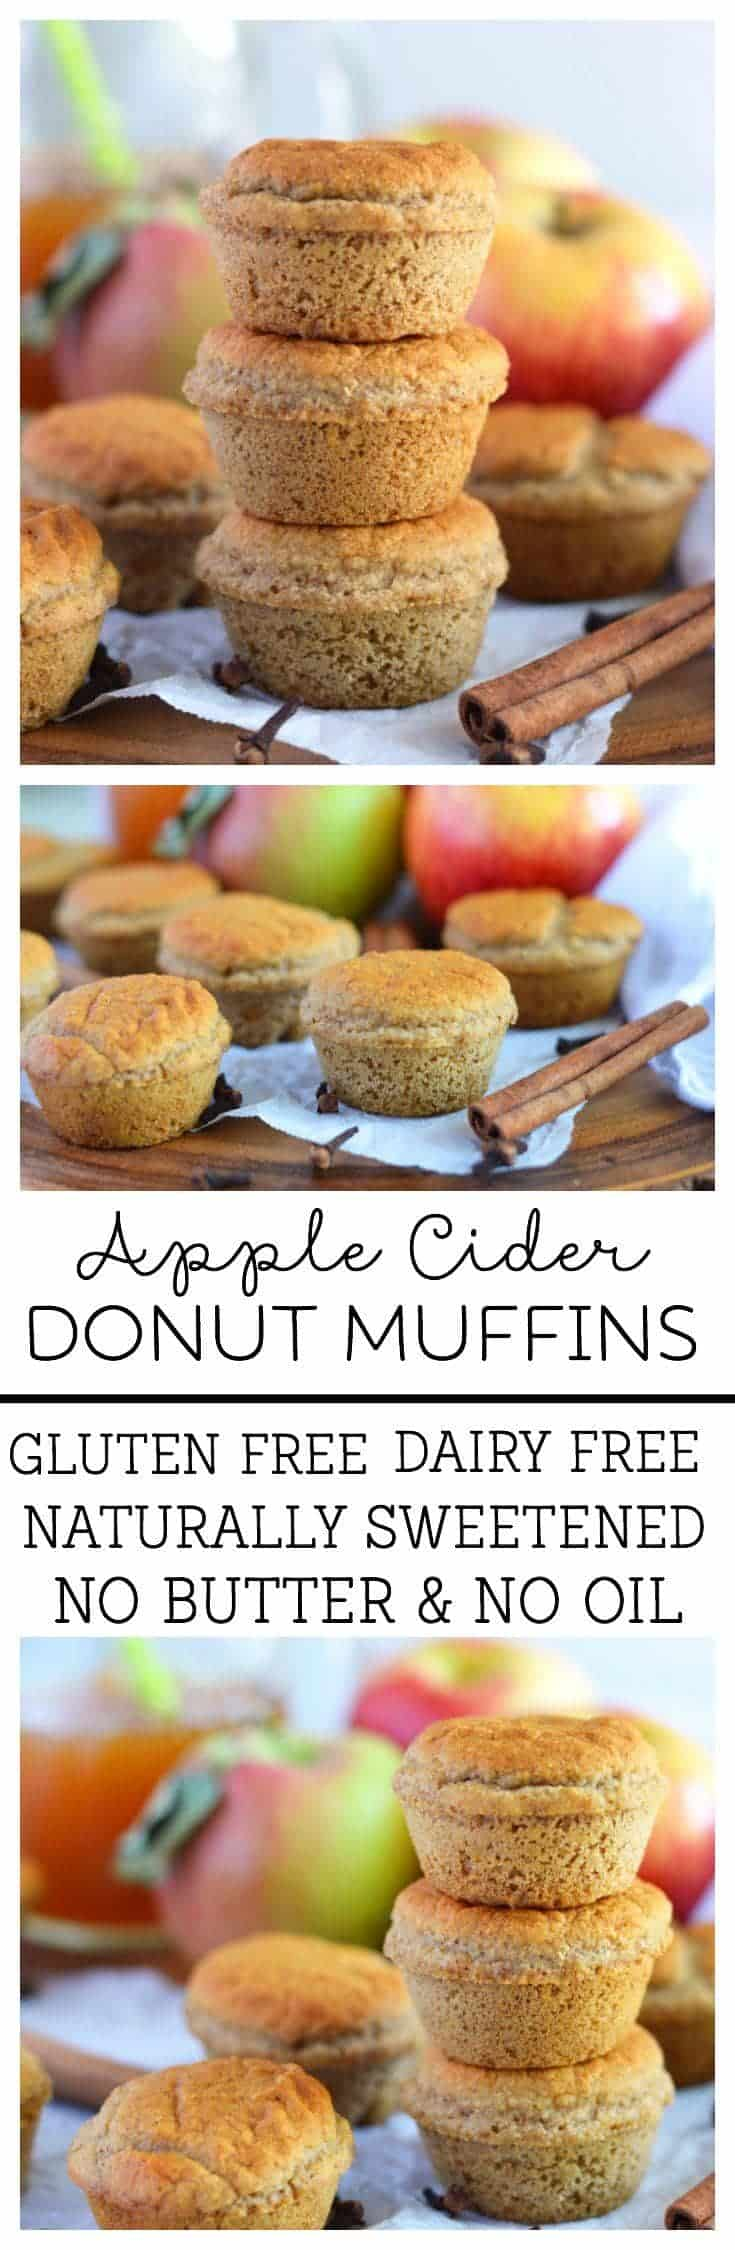 Apple Cider Donut Muffins (gluten free, dairy free, naturally sweetened, no butter, no oil) from What The Fork Food Blog | @WhatTheForkBlog | whattheforkfoodblog.com